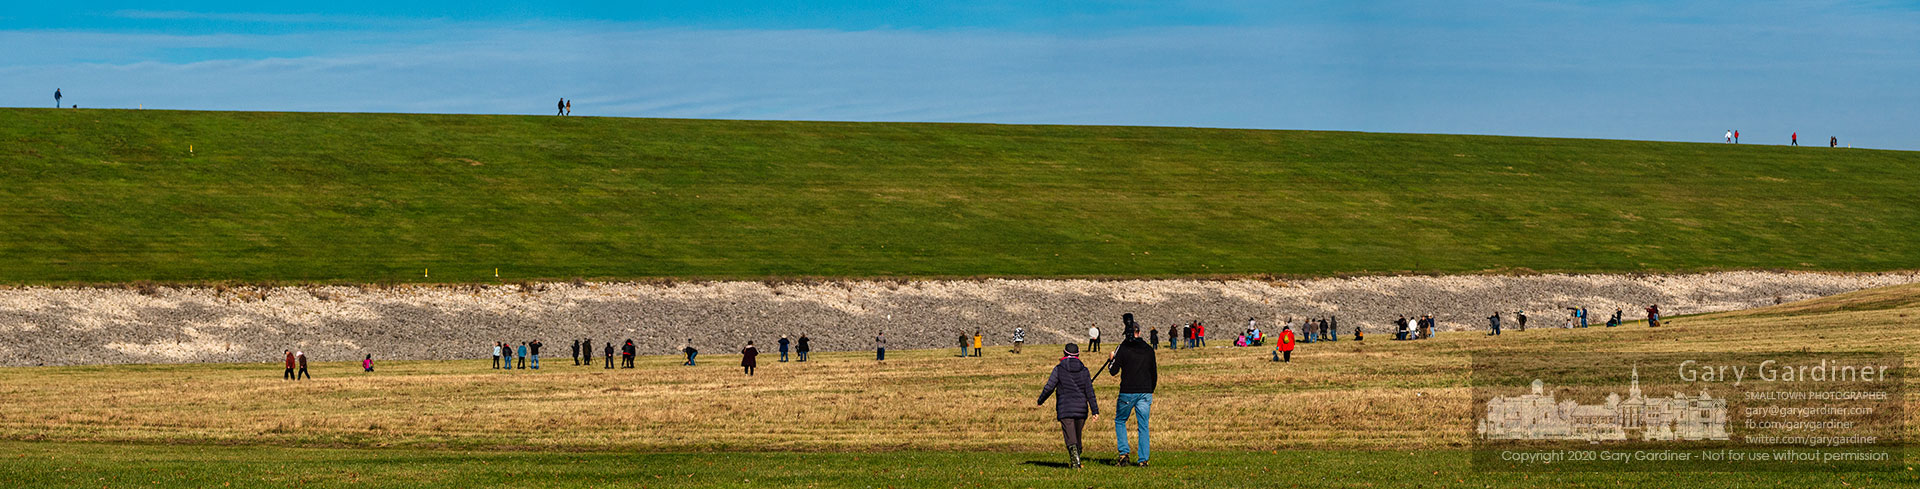 Photographers and friends of fowl gather below the Alum Creek Dam to observe and photograph a snowy owl that began visiting the structure earlier this week. My Final Photo for Nov. 29, 2020.